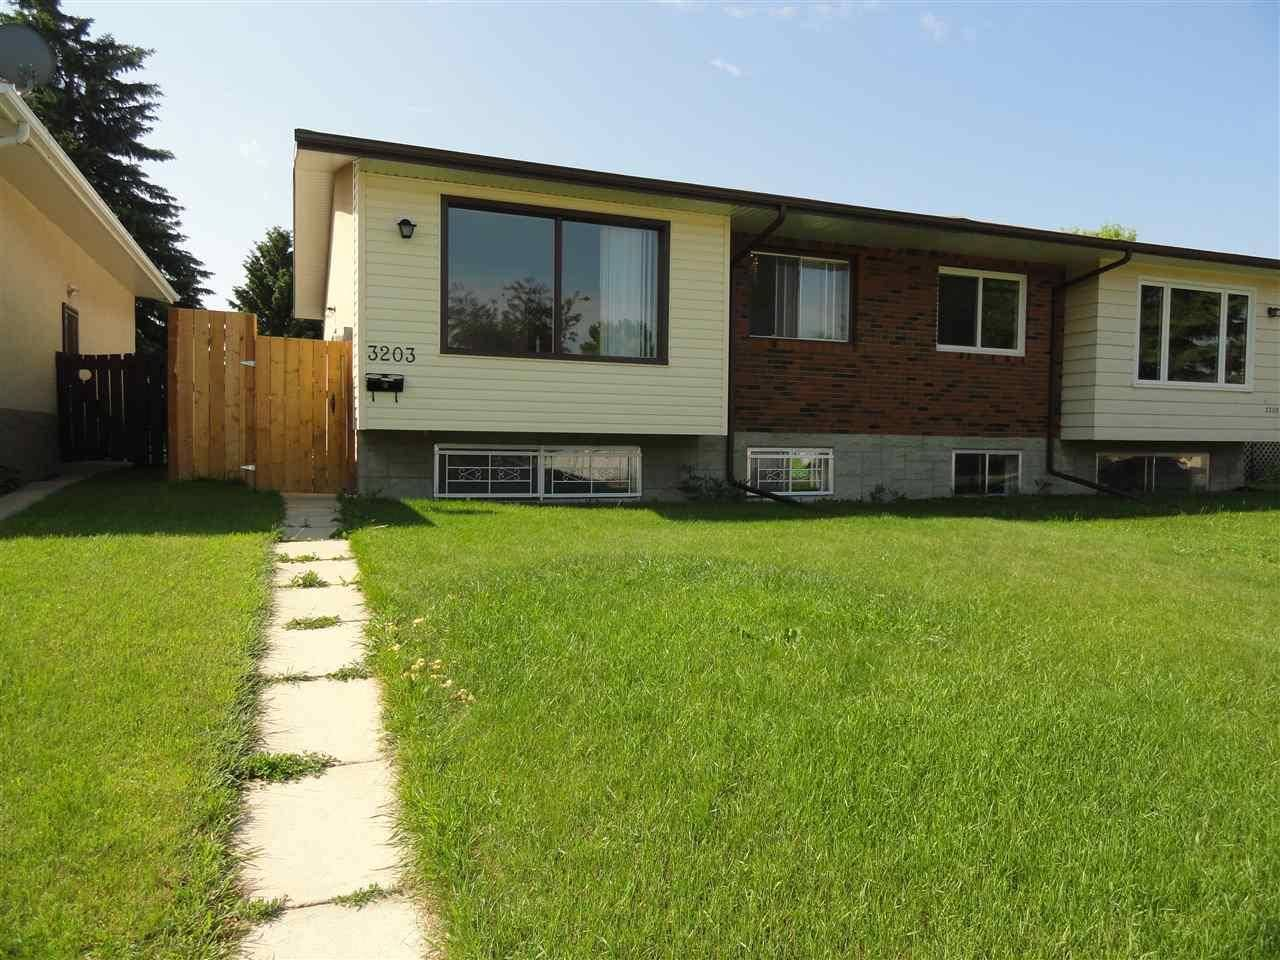 Townhouse for sale at 3203 113 Ave Nw Edmonton Alberta - MLS: E4163553